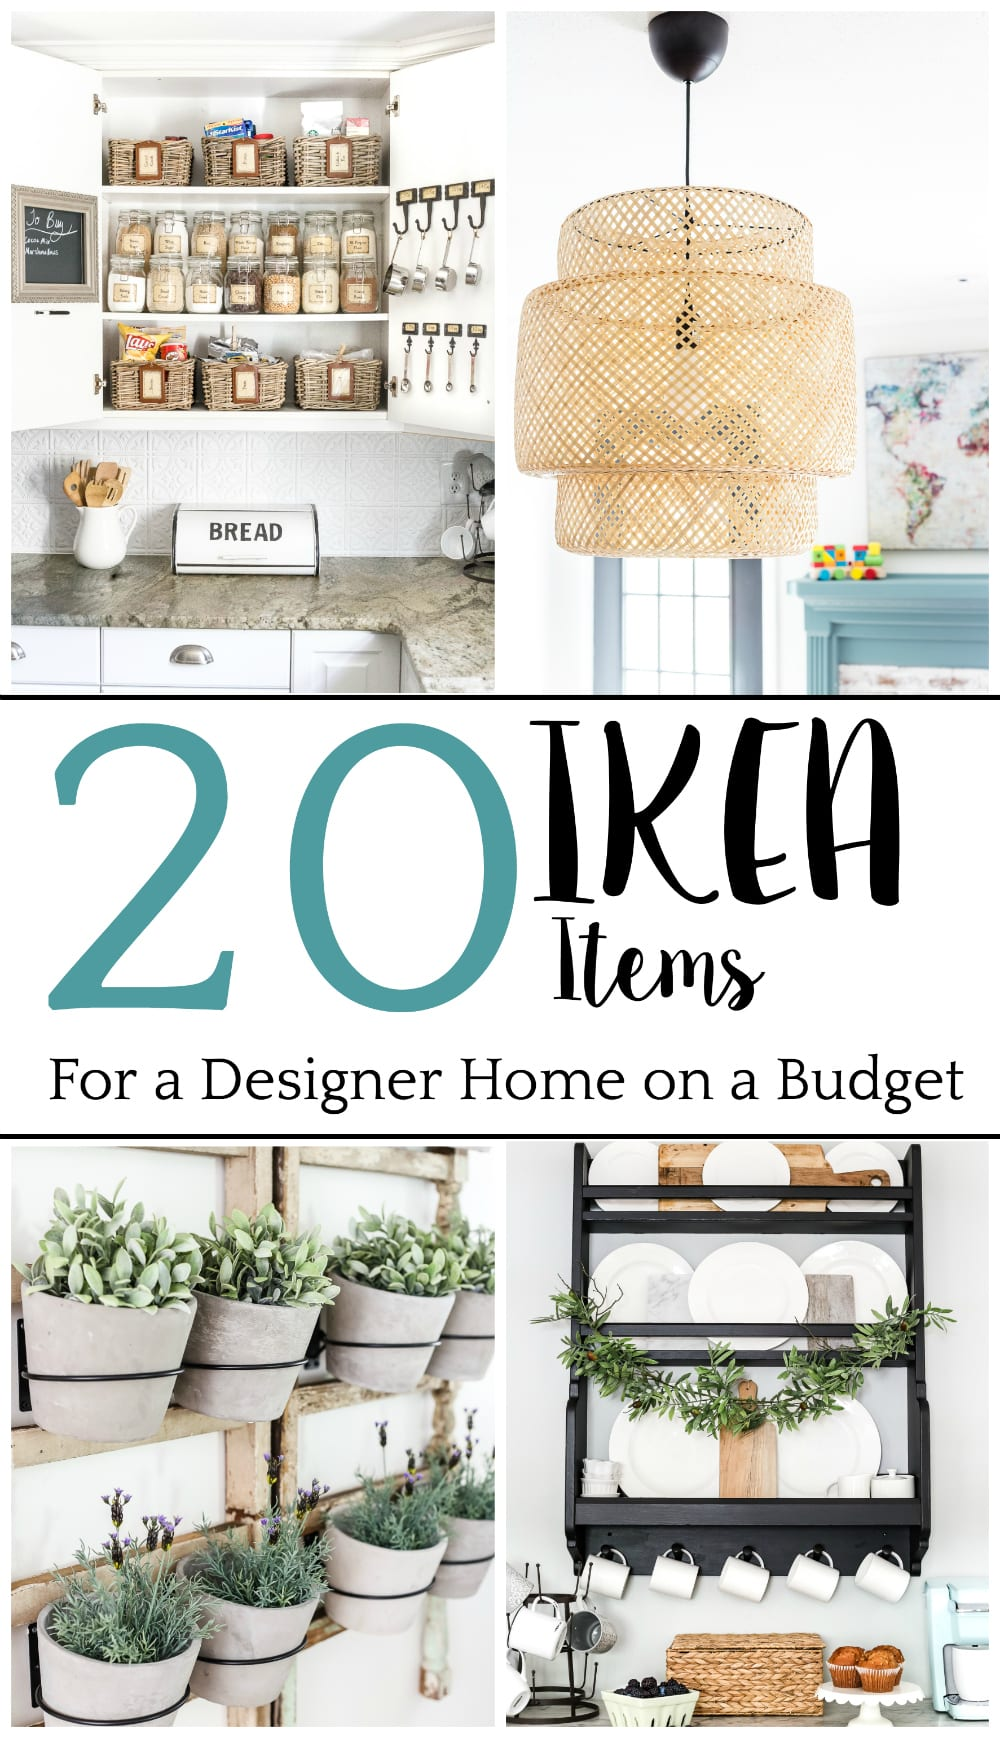 Merveilleux The Top 20 IKEA Items That Look High End For A Low Price To Decorate